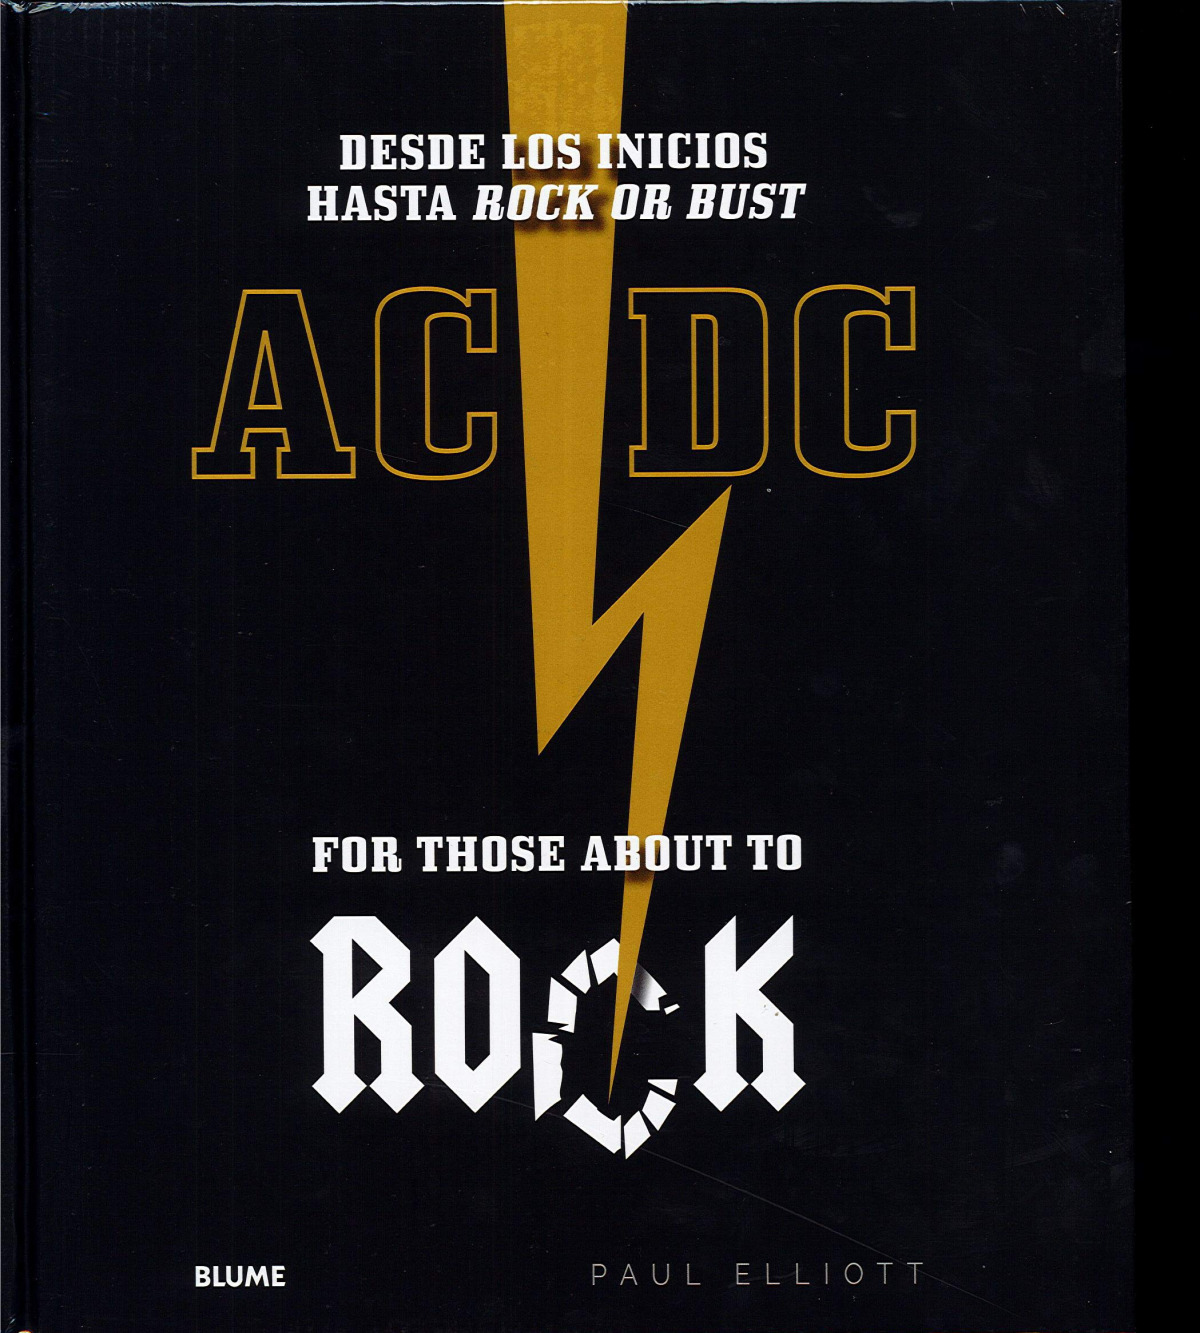 AC7DC. FOR THOSE ABOUT TO ROCK